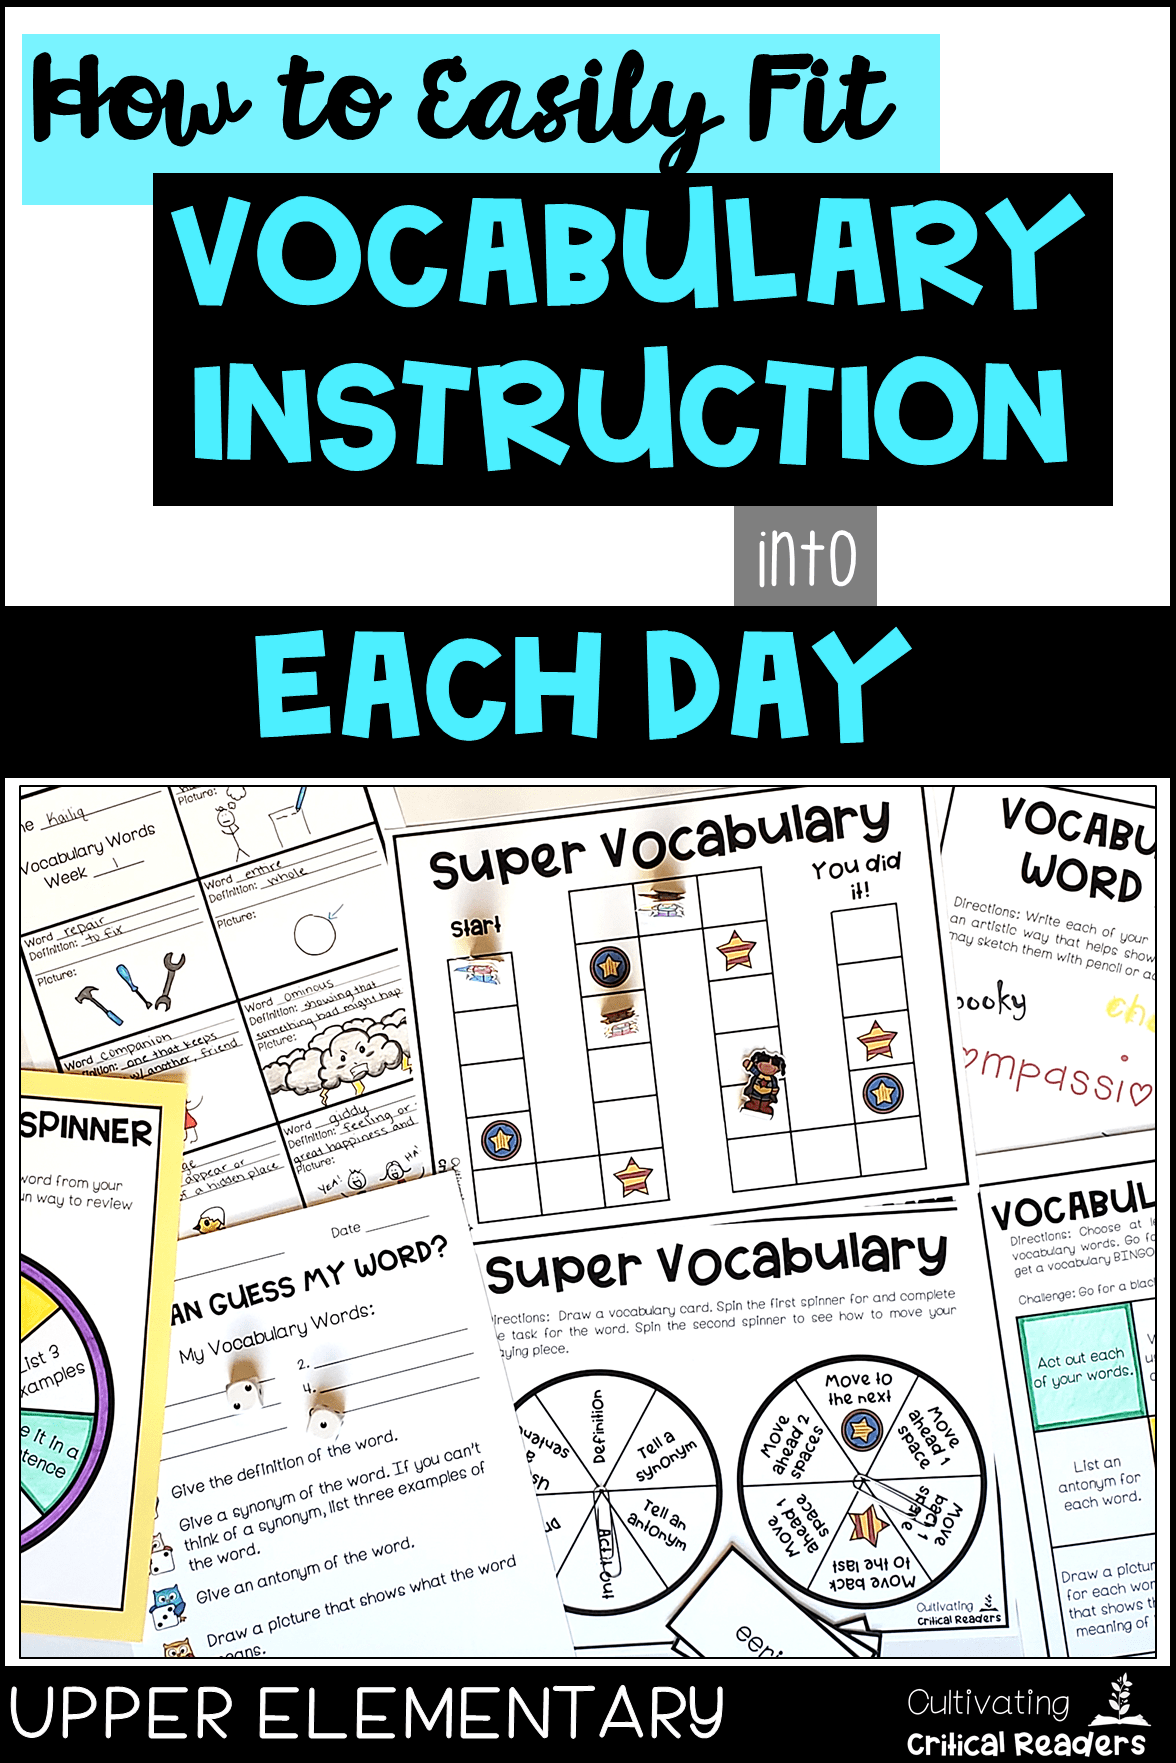 How to Easily Fit Vocabulary Instruction into Each Day